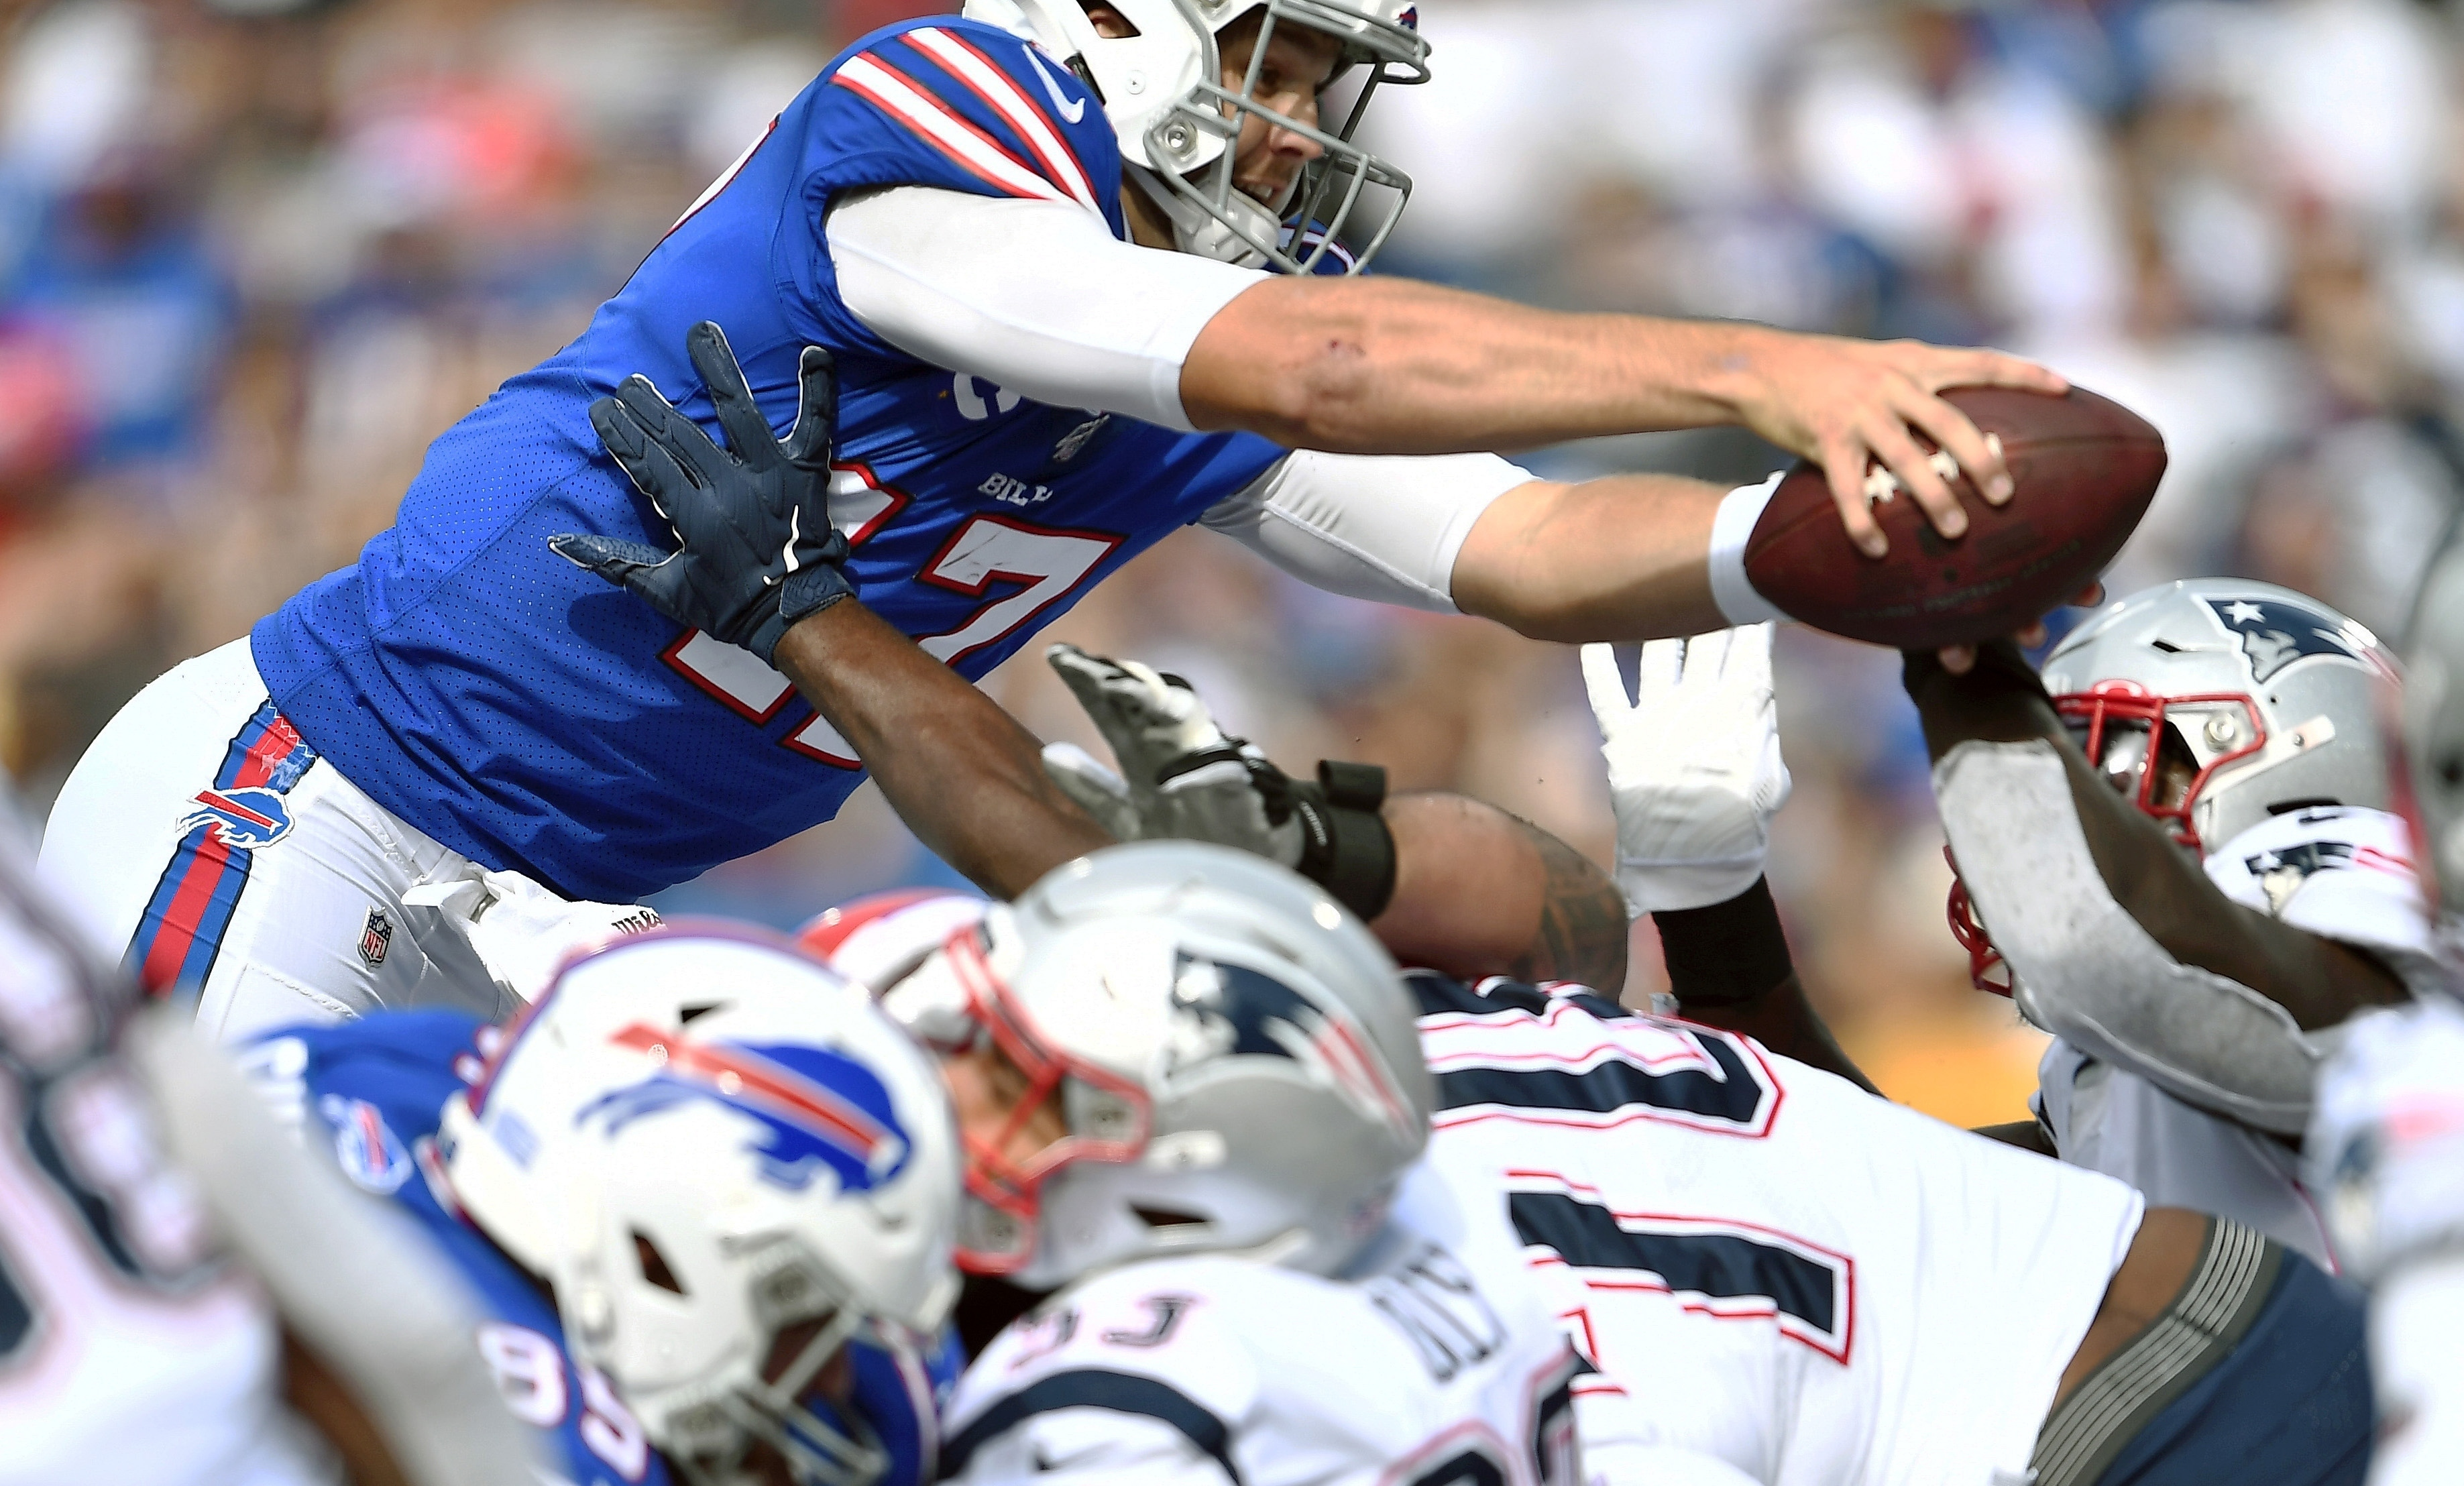 How to watch Bills vs. Patriots: TV channel, time, live stream information  - syracuse.com